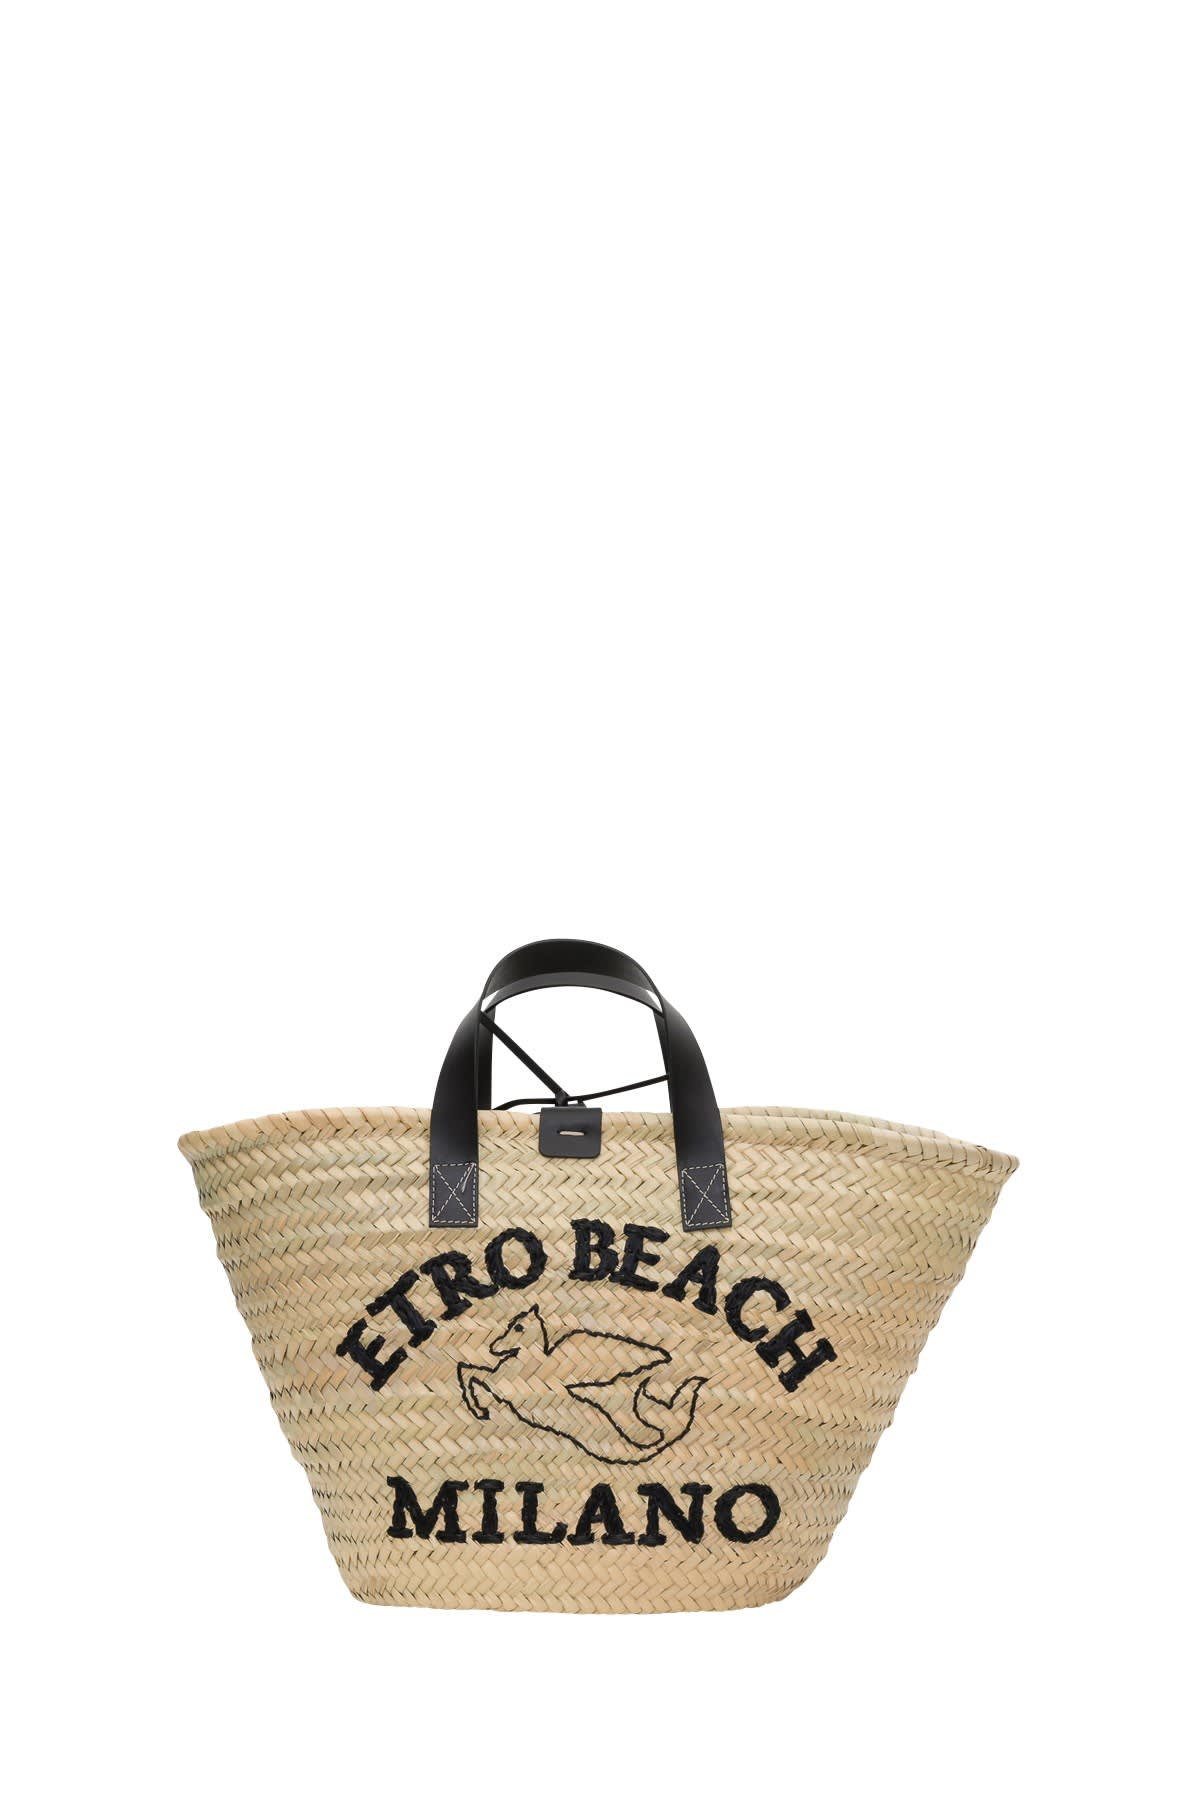 Etro Tote Shopper With Embroidery